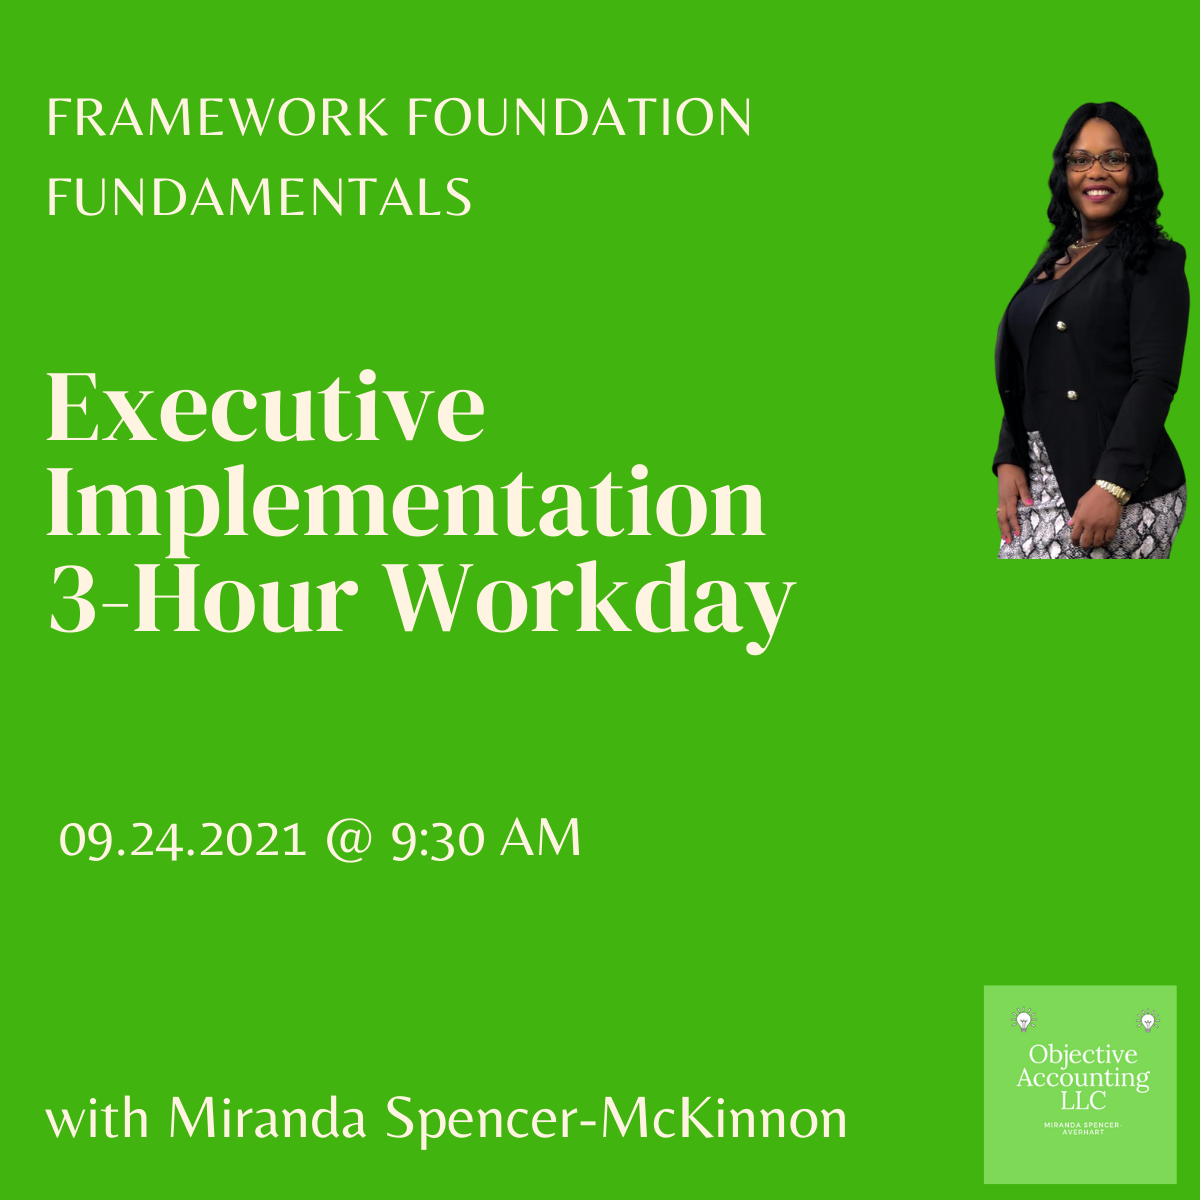 Executive Implementation 3-Hour Workday  09.24.2021